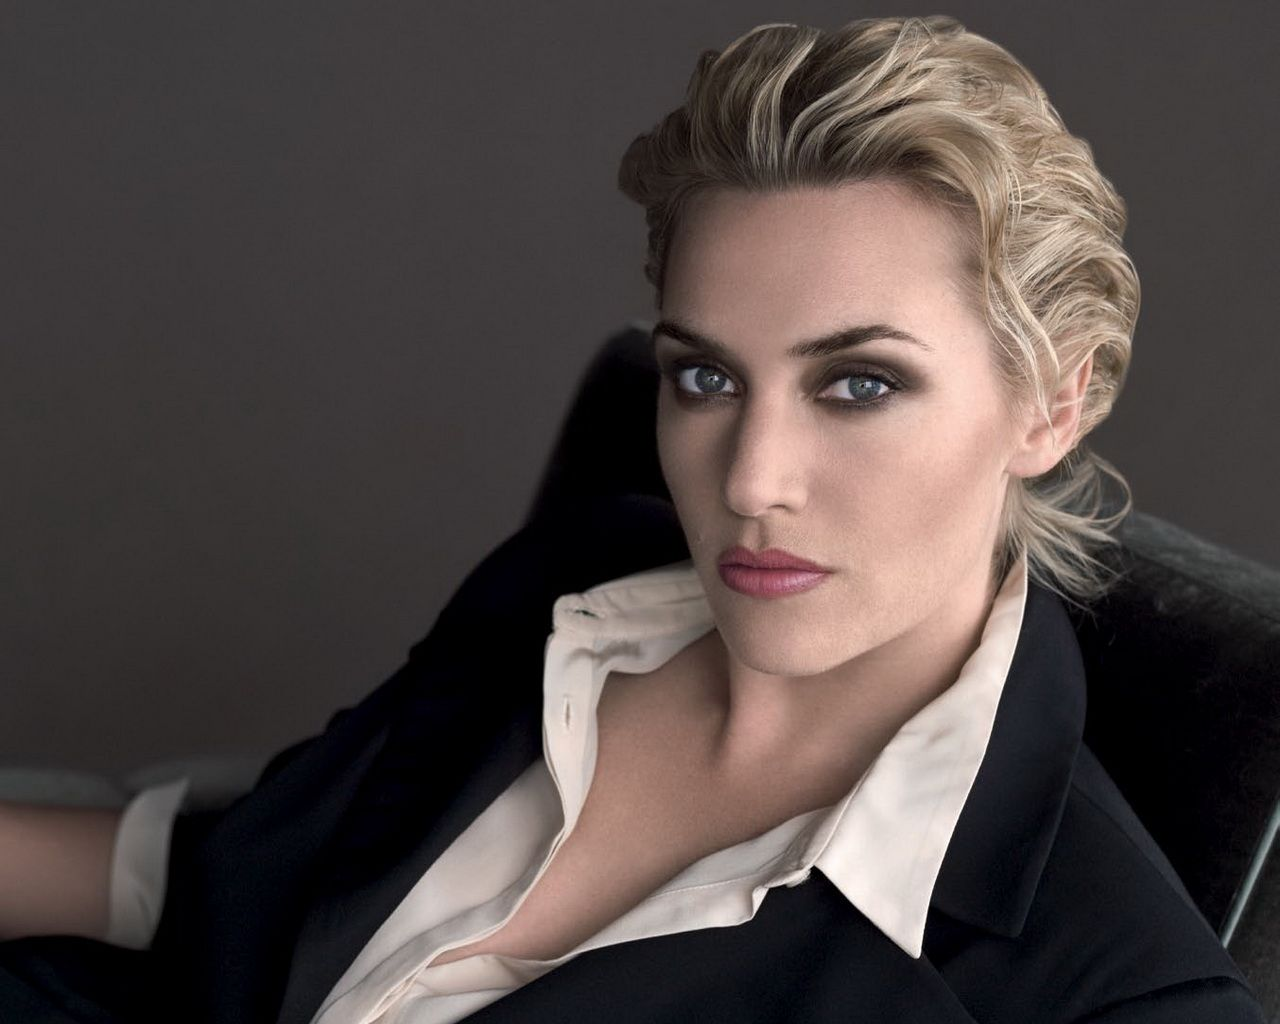 Kate Winslet Hd Images Get Free Top Quality Kate Winslet